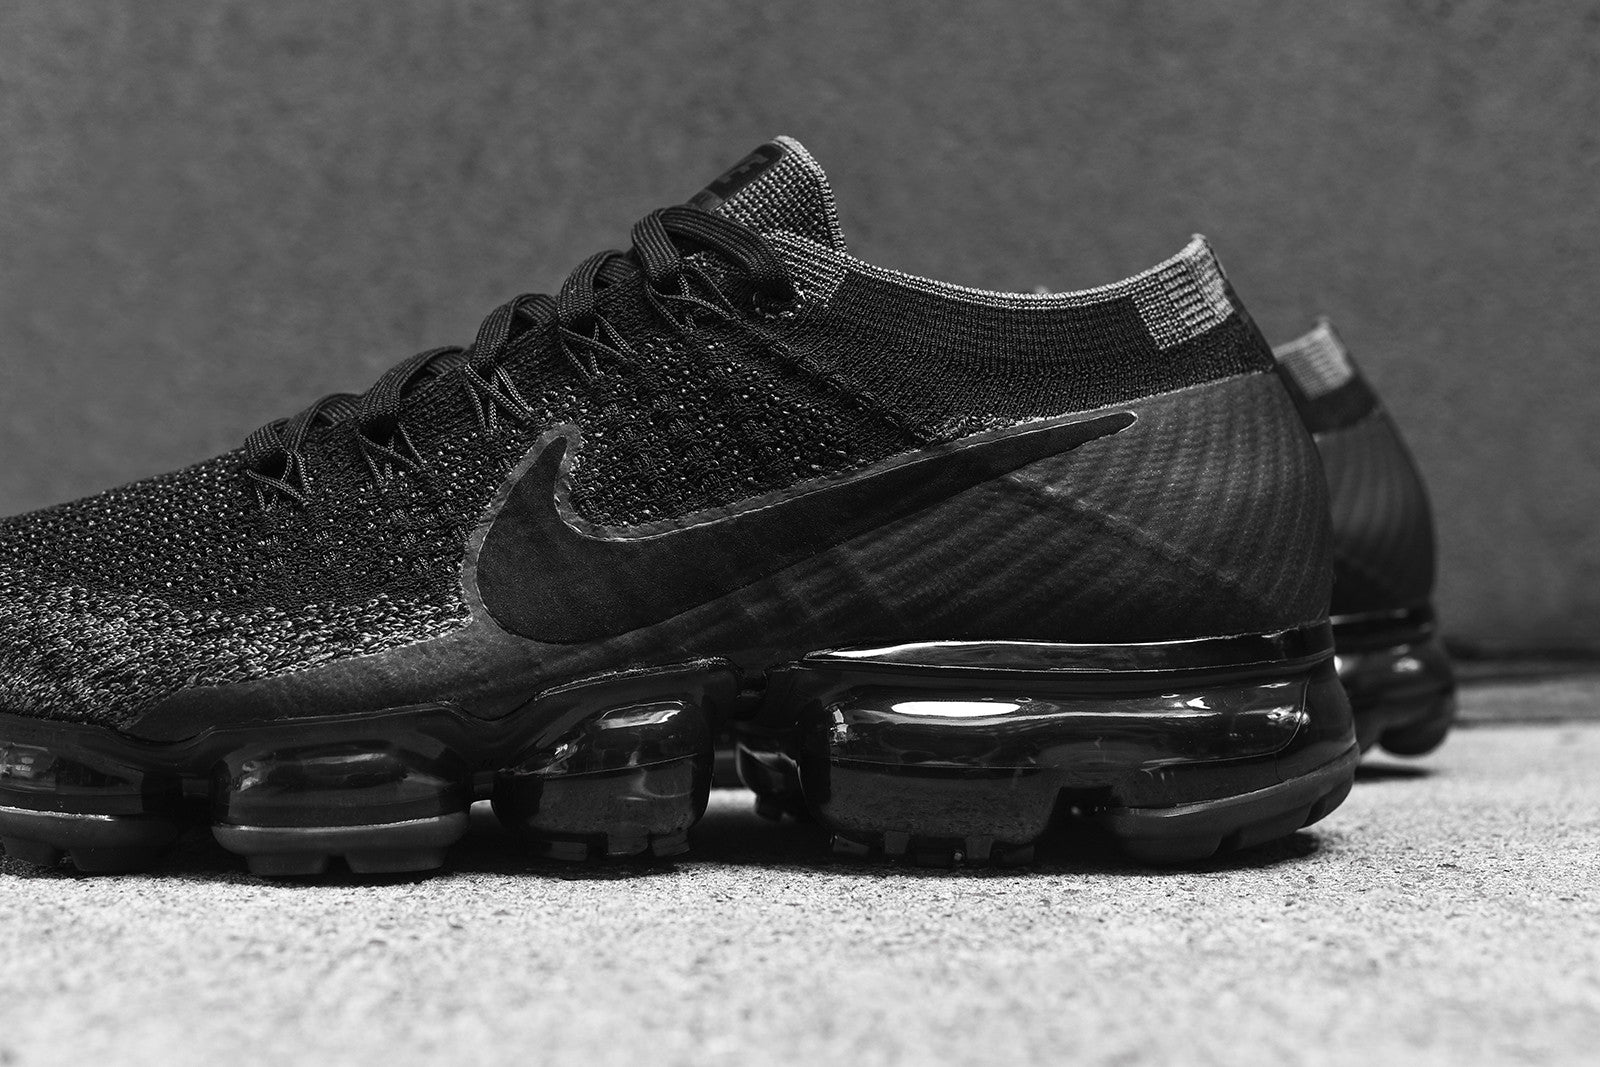 outlet store sale 4fdb0 3cadd Nike Air VaporMax Flyknit - Black – Kith